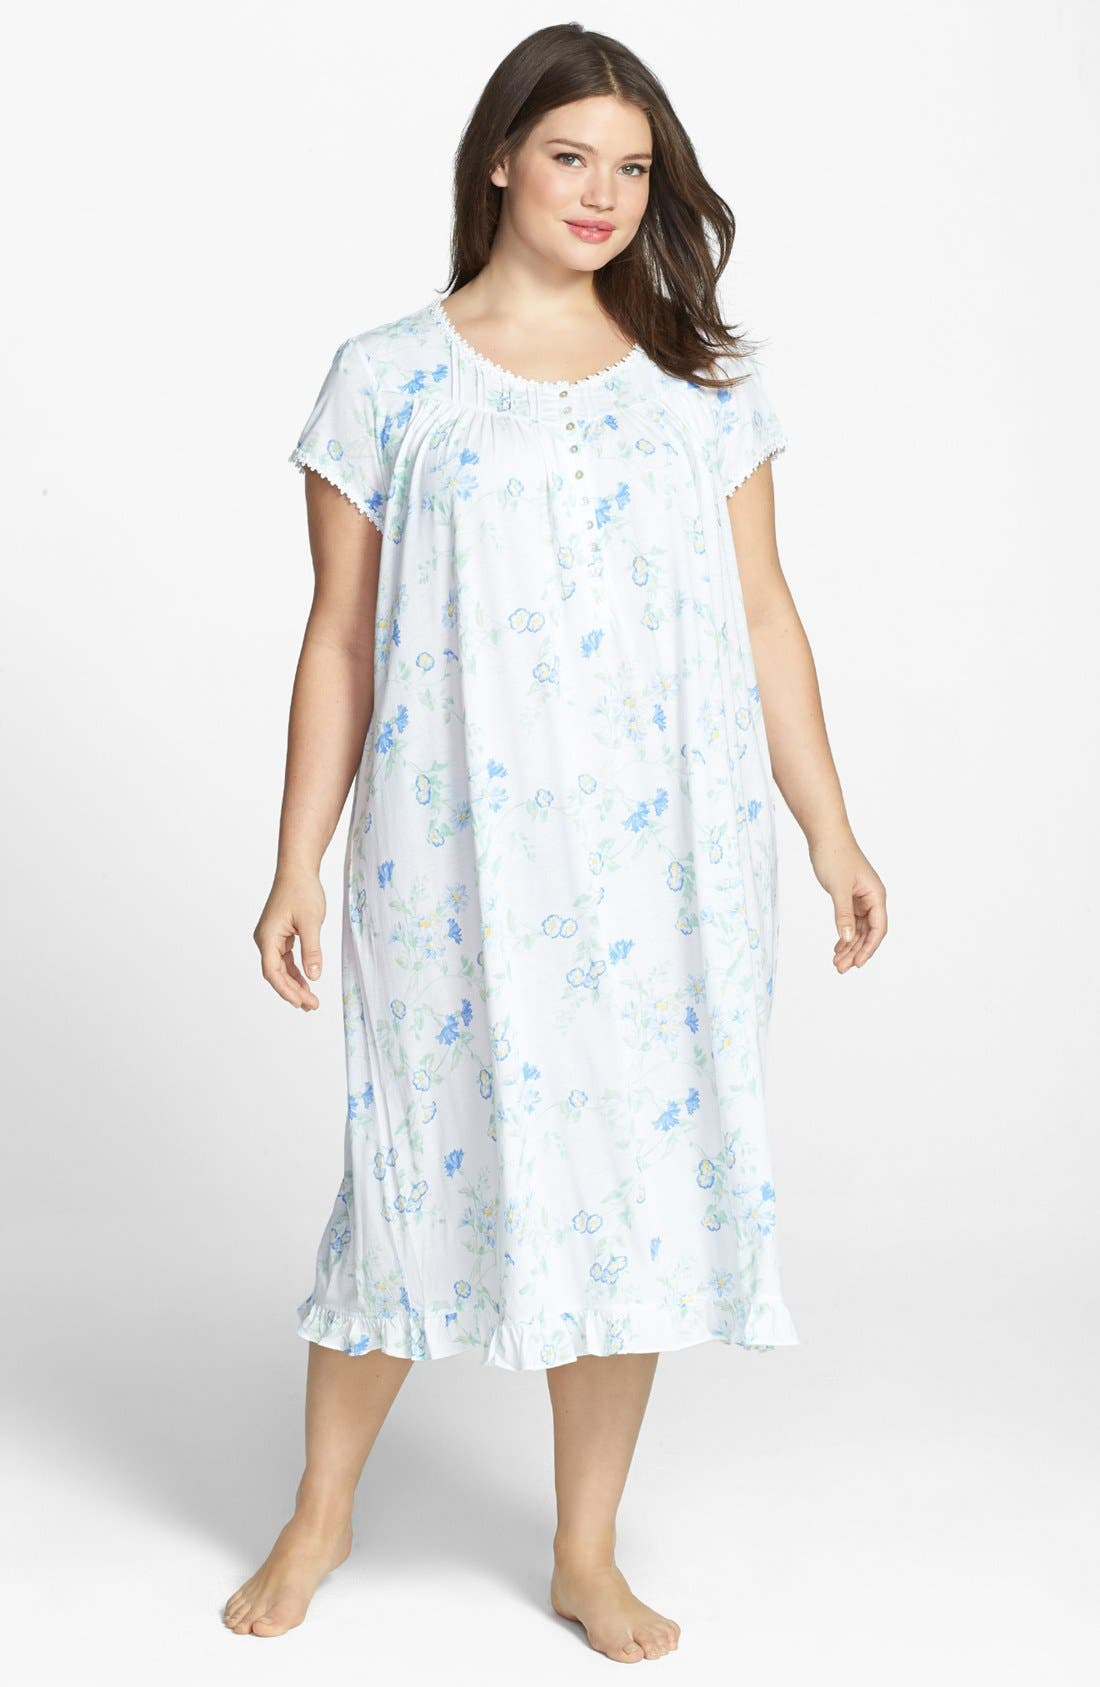 Alternate Image 1 Selected - Eileen West 'Serendipity' Nightgown (Plus Size)